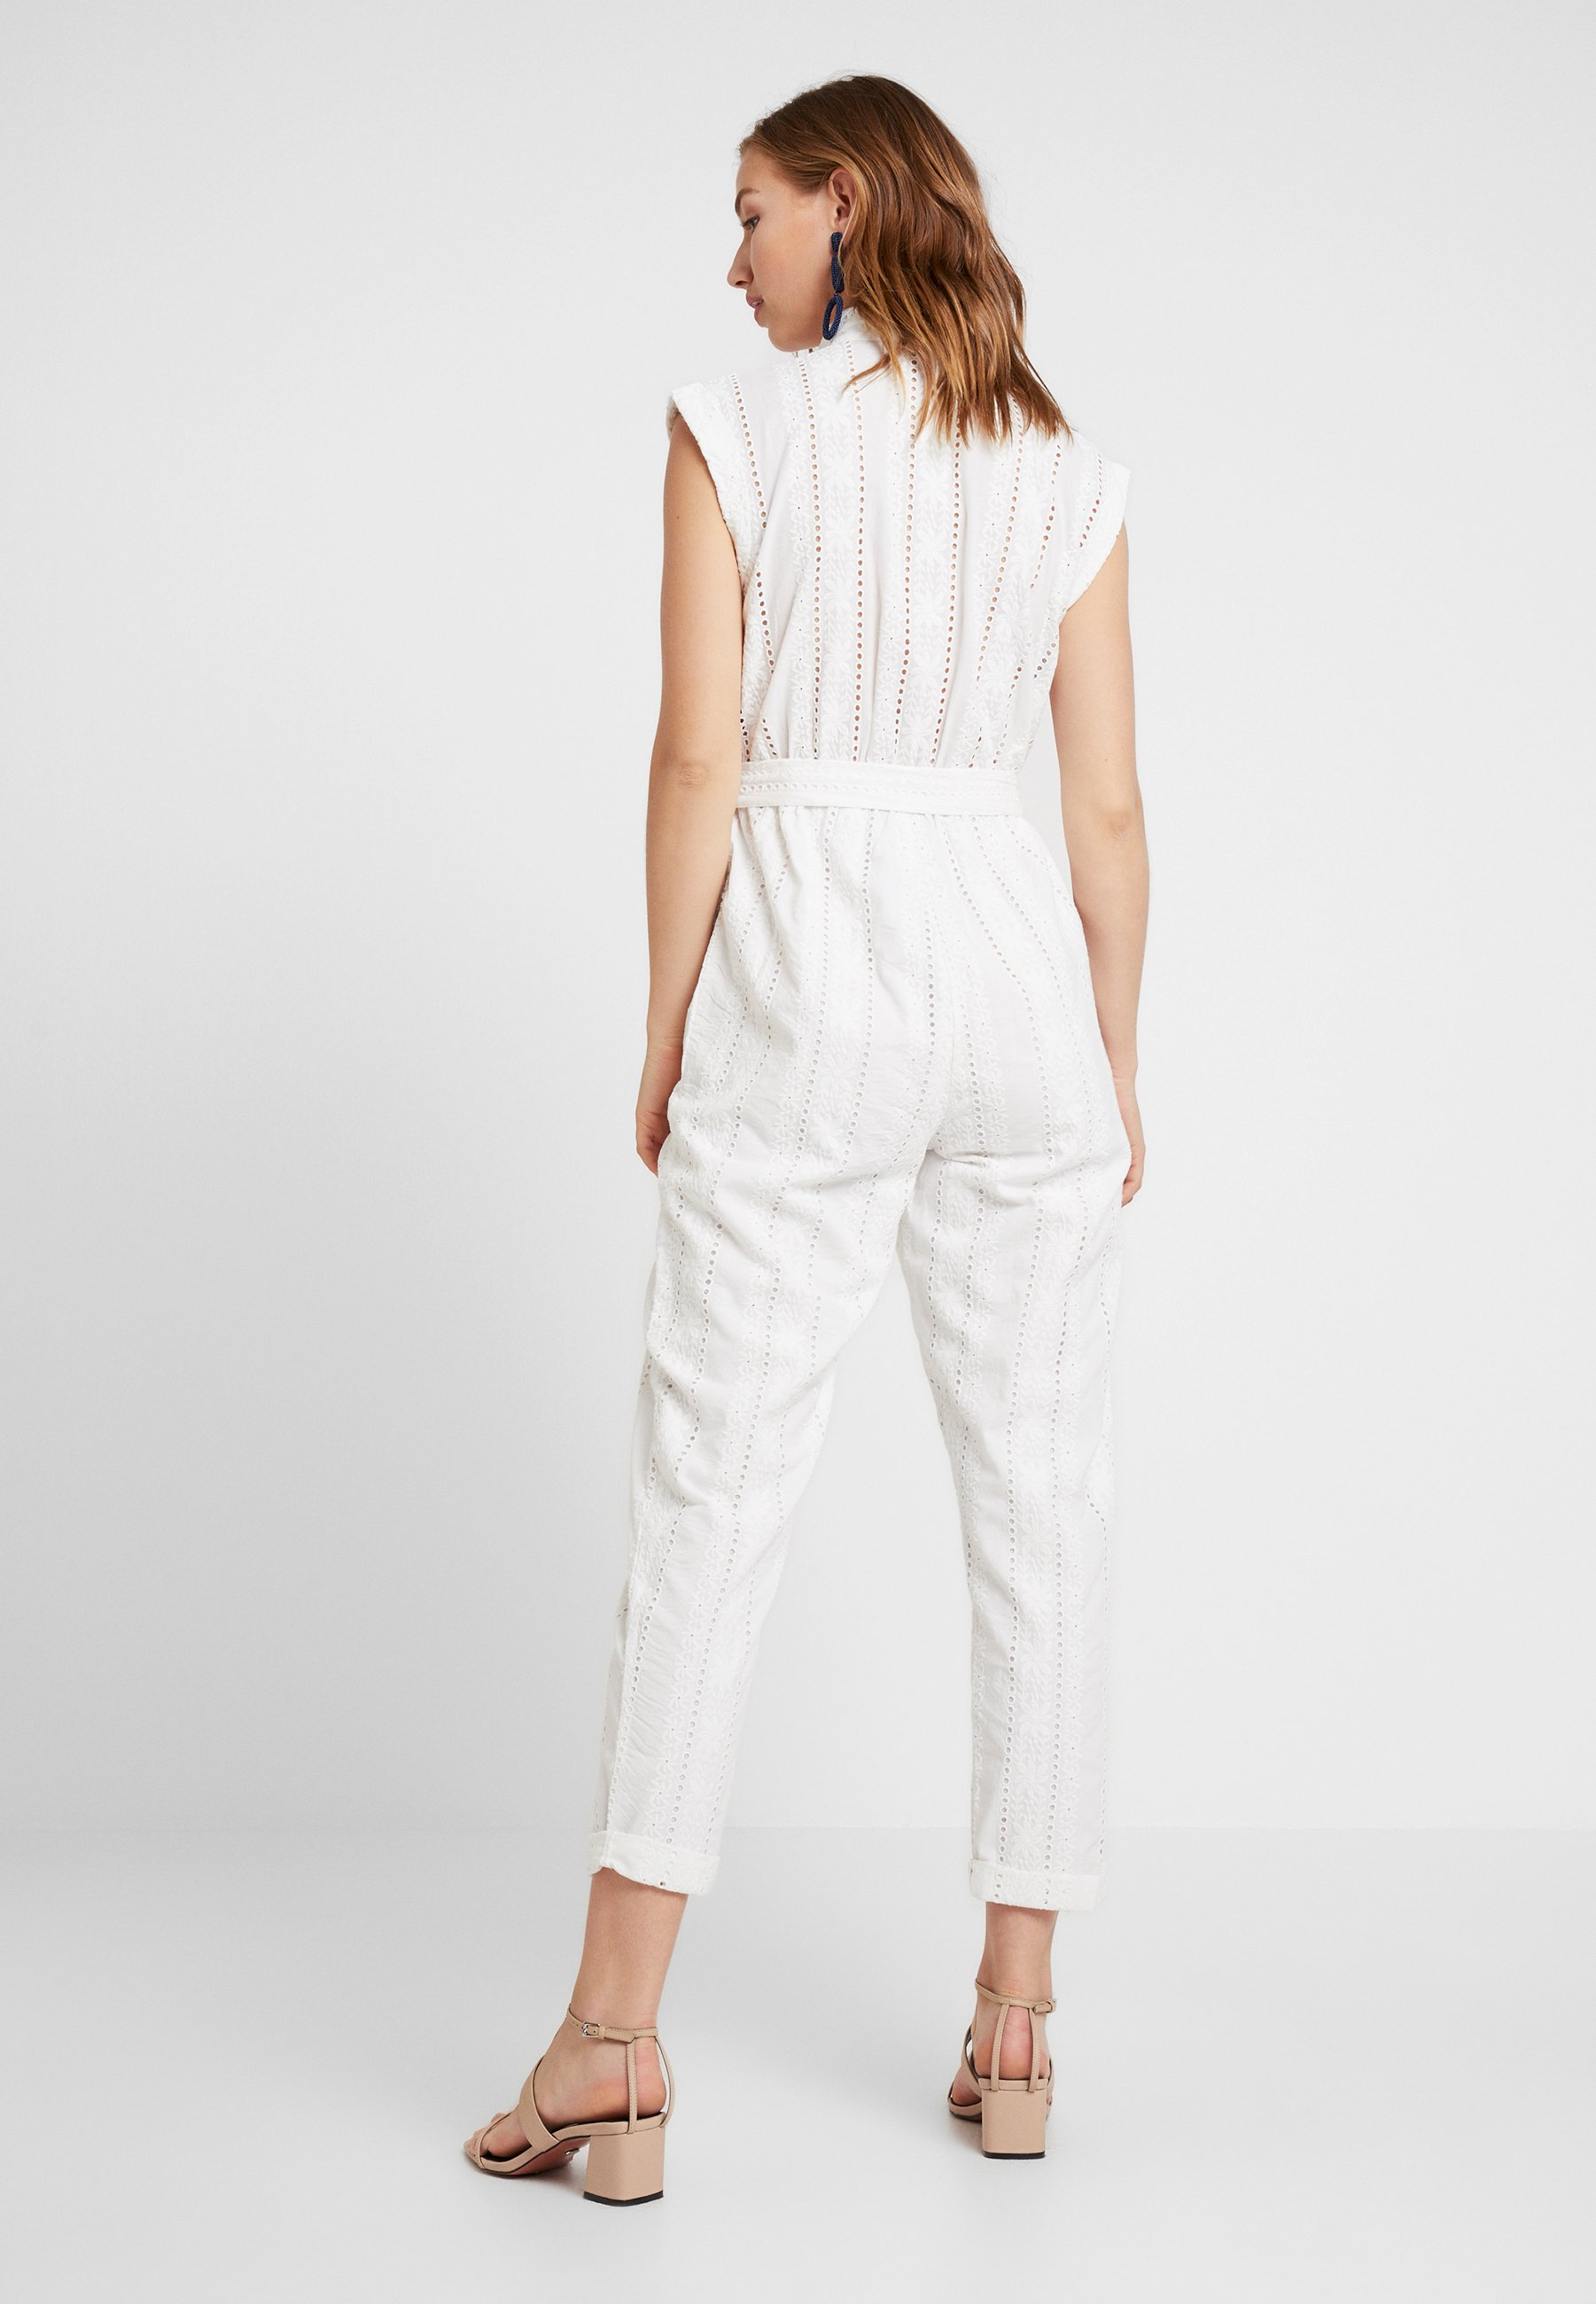 BroderieTuta Miss Ivory Selfridge Utility Jumpsuit fby76gY